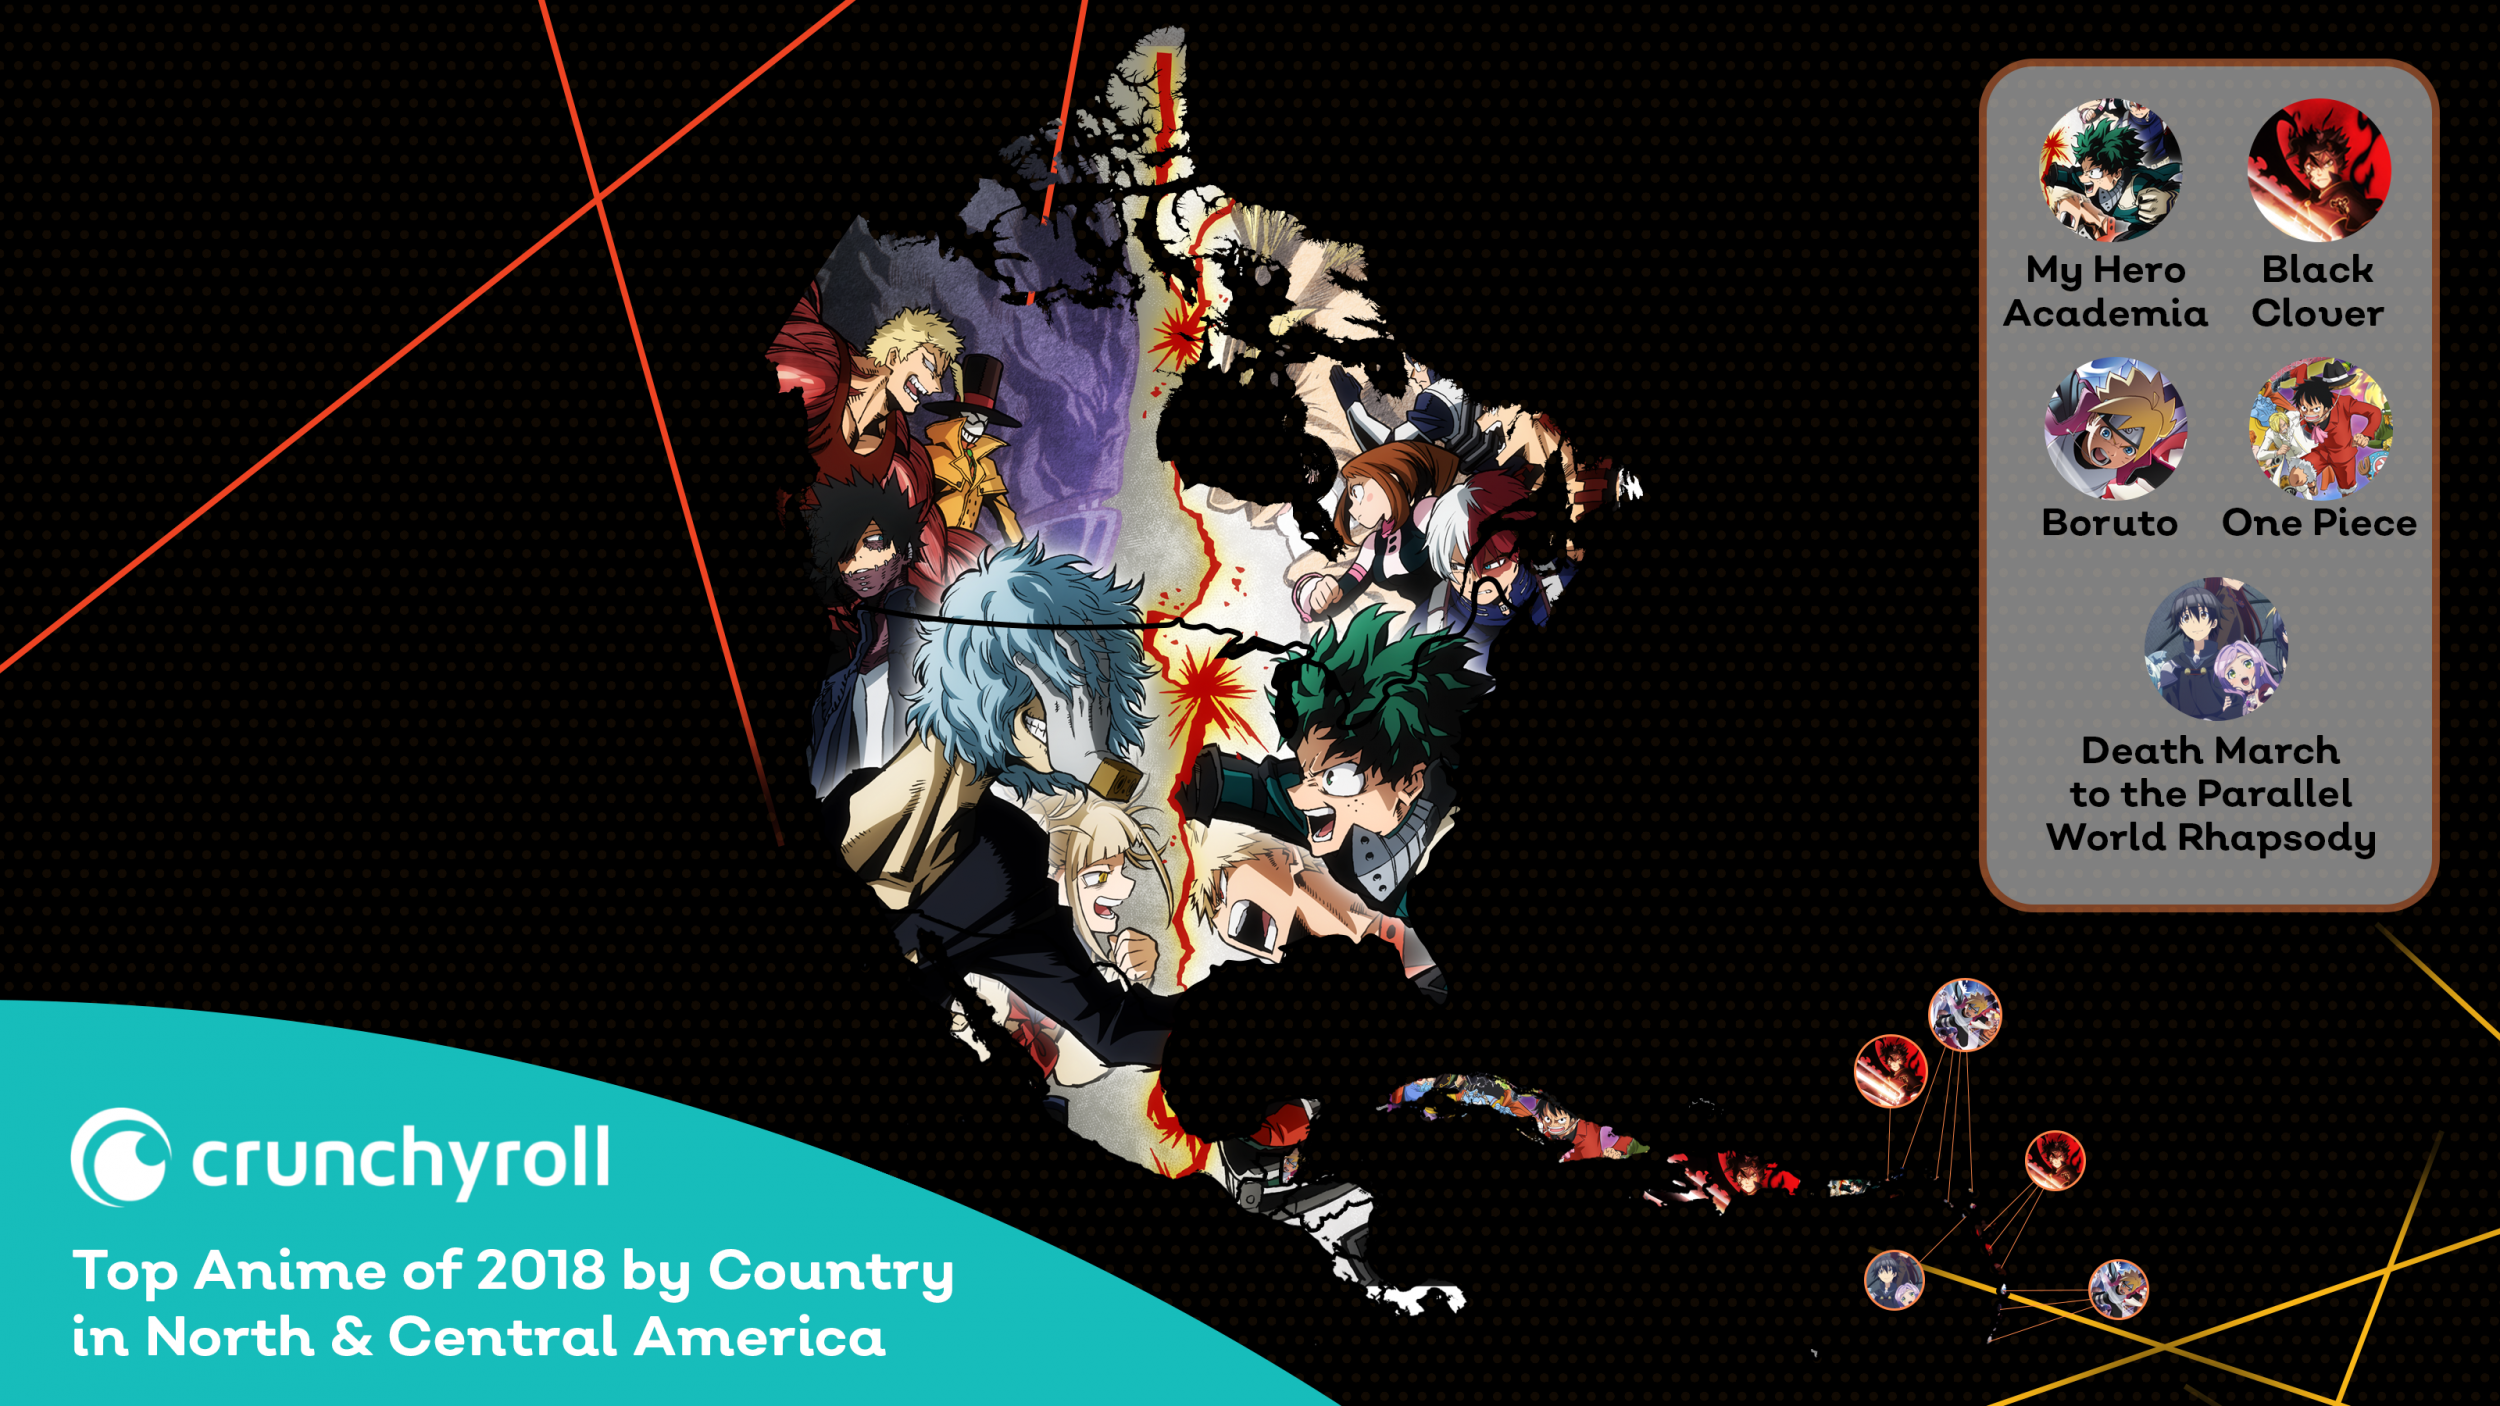 Crunchyroll's Most Watched Anime of 2018 by Country